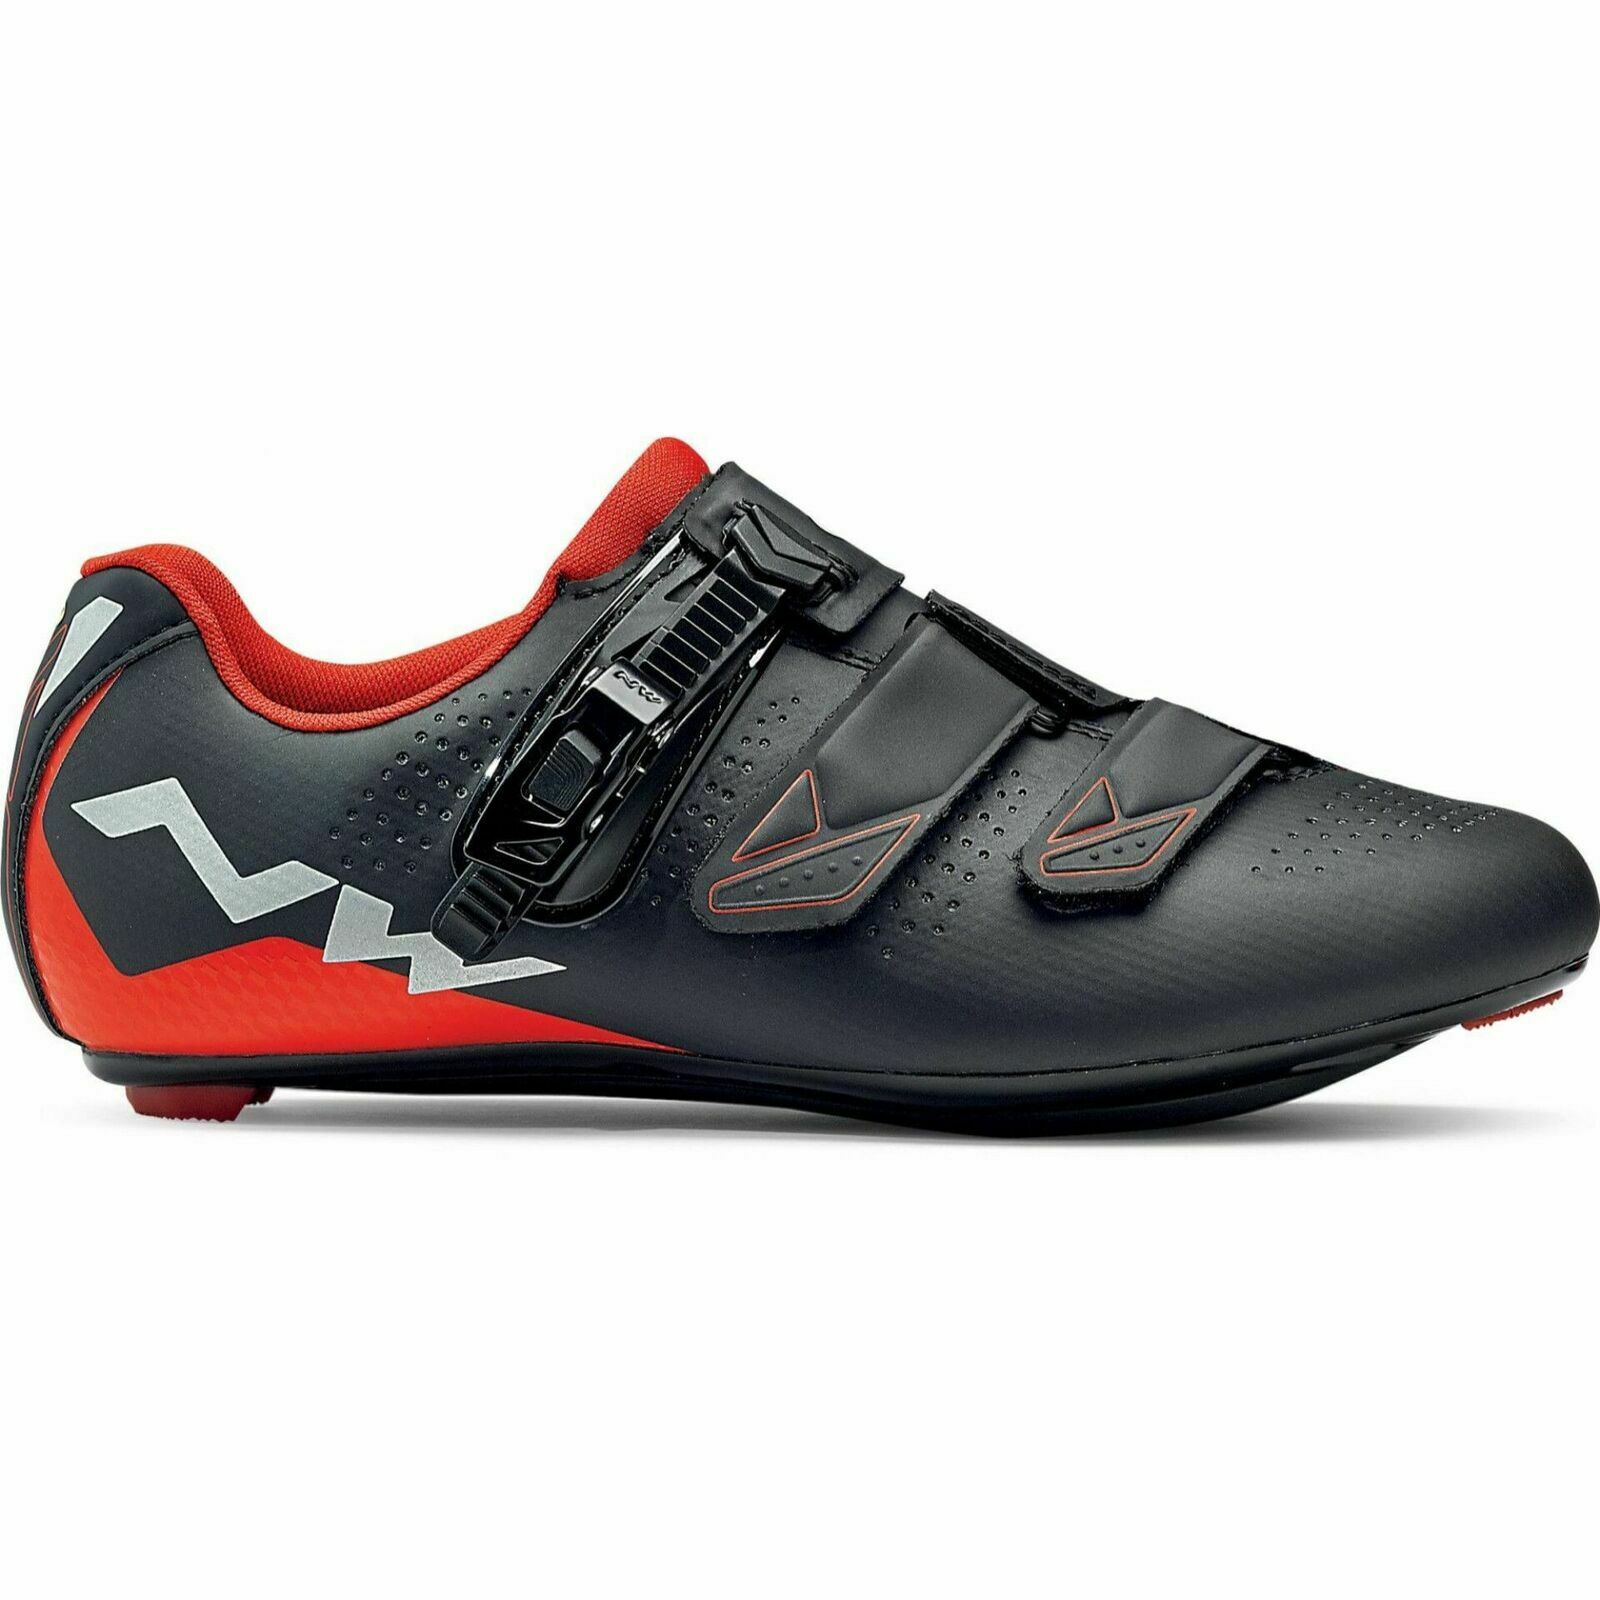 NEW  NORTHWAVE VERVE2 CYCLING schuhe, CLEARANCE PRICE, UK STOCK